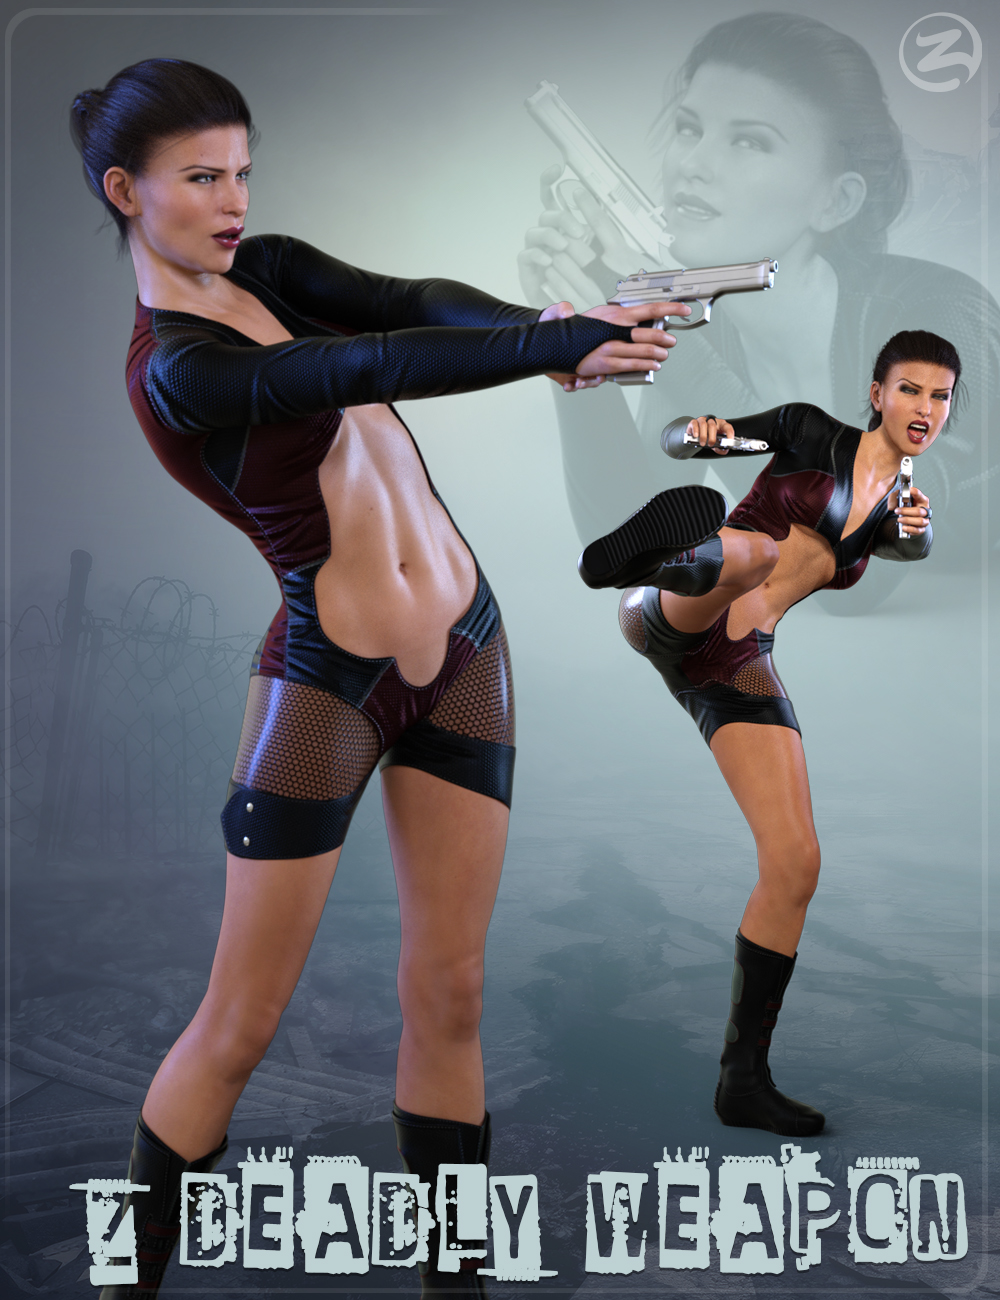 Z Deadly Weapon - Gun and Poses for Genesis 8 Female and Victoria 8 by: Zeddicuss, 3D Models by Daz 3D